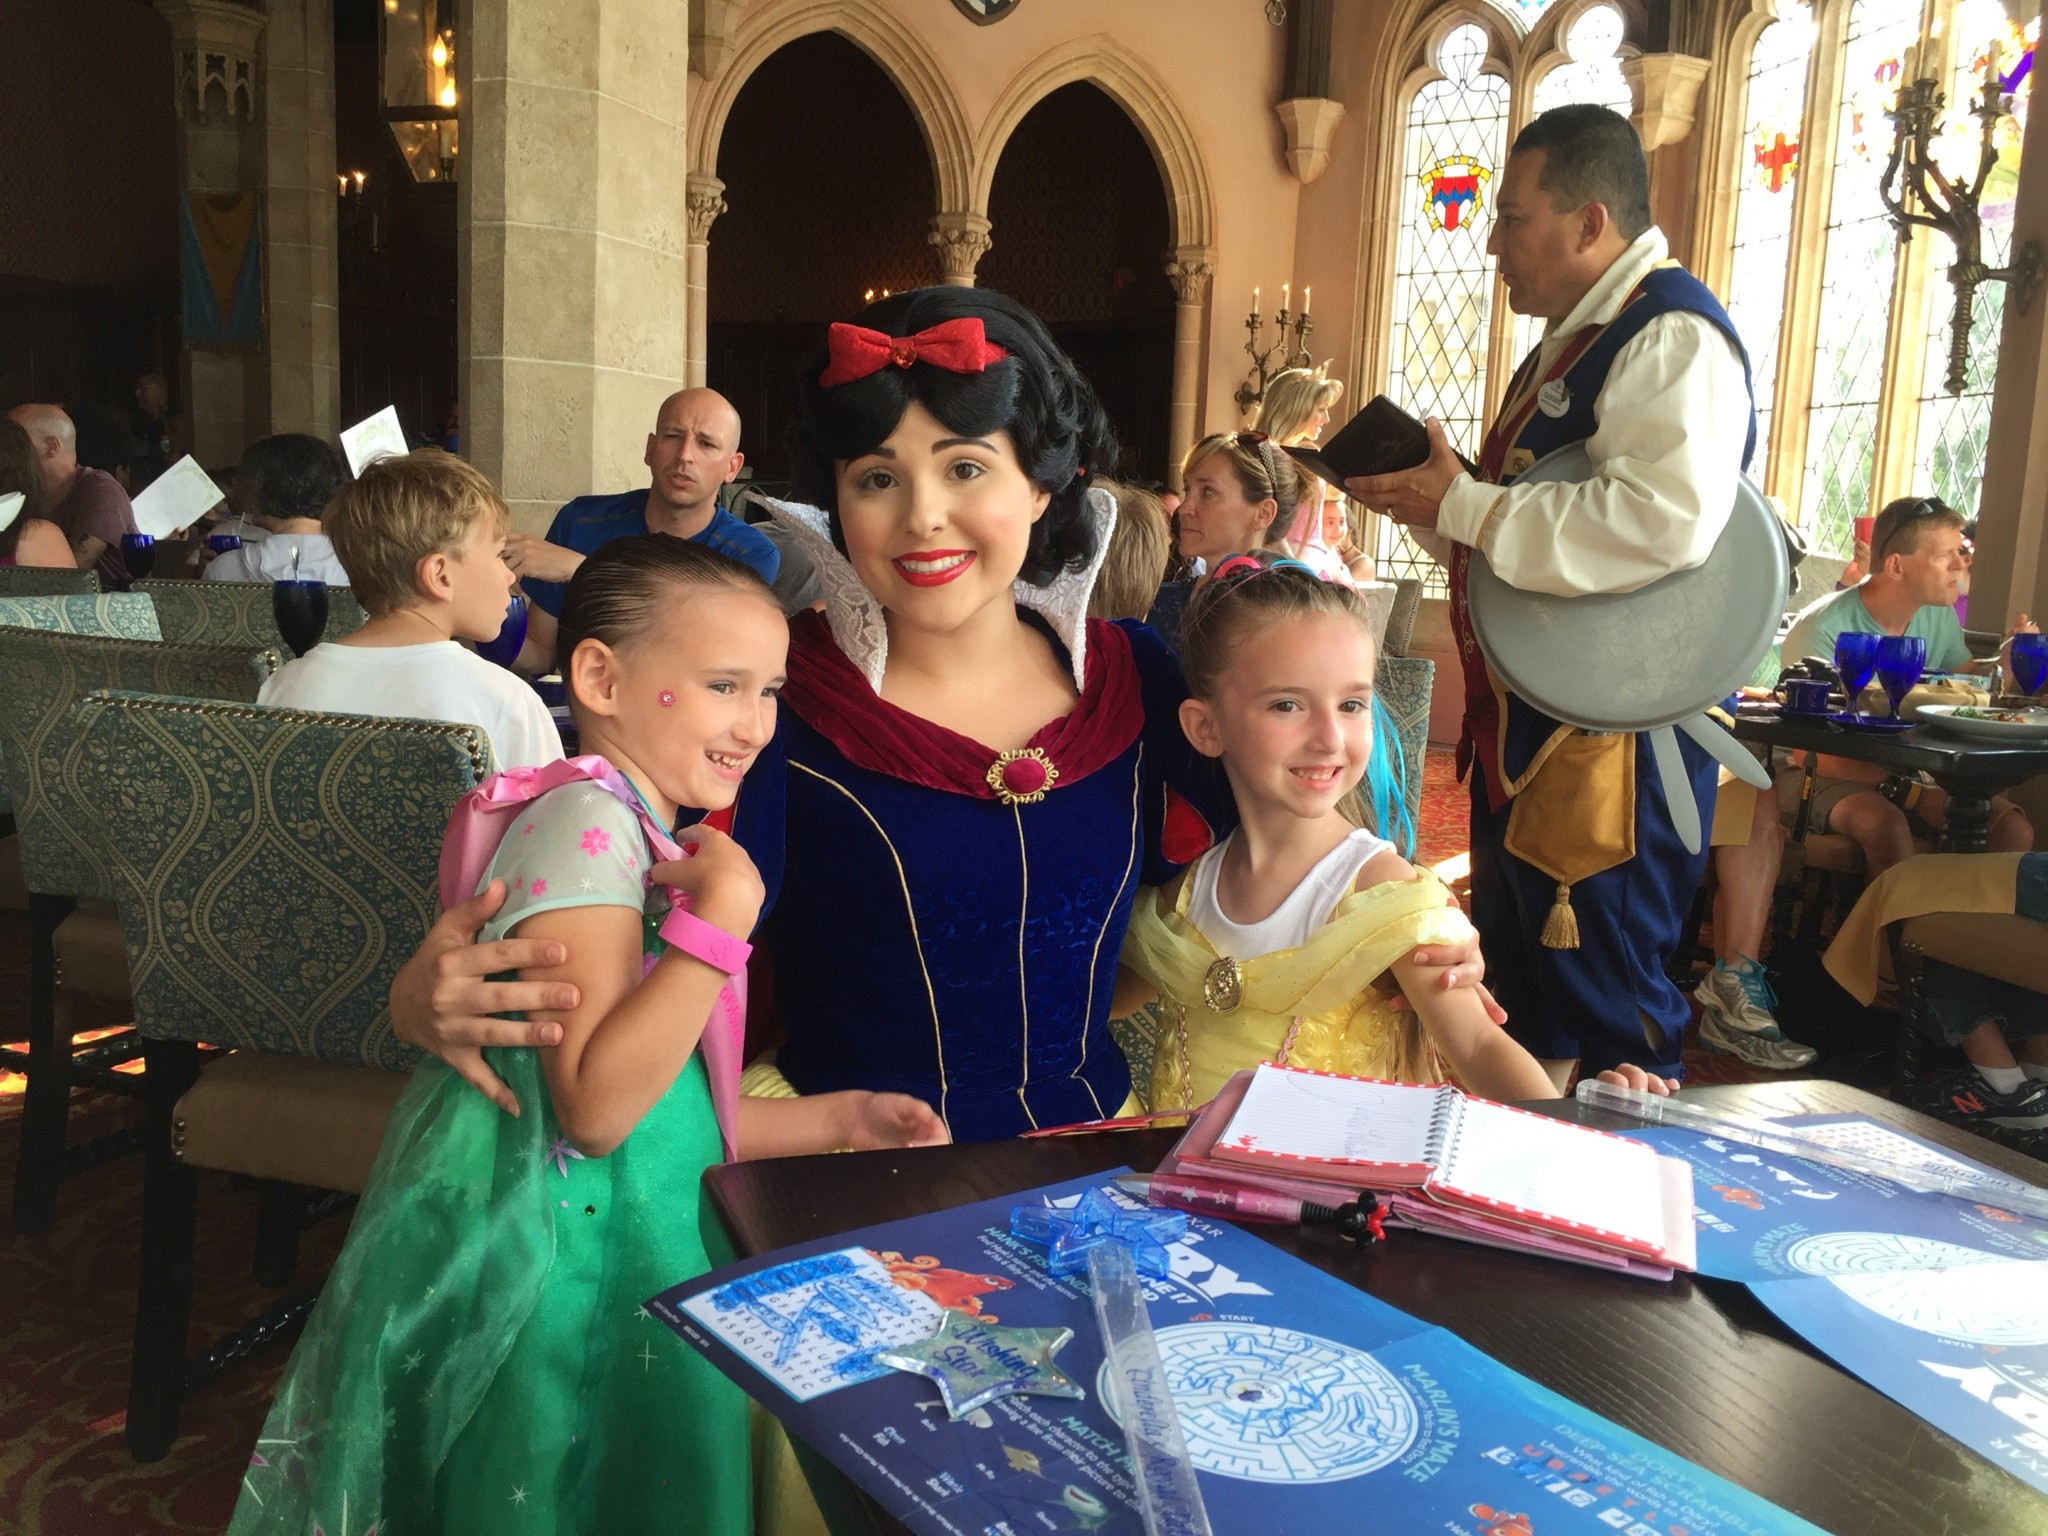 Princess Snow White and the Girls at Magic Kingdom Royal Table